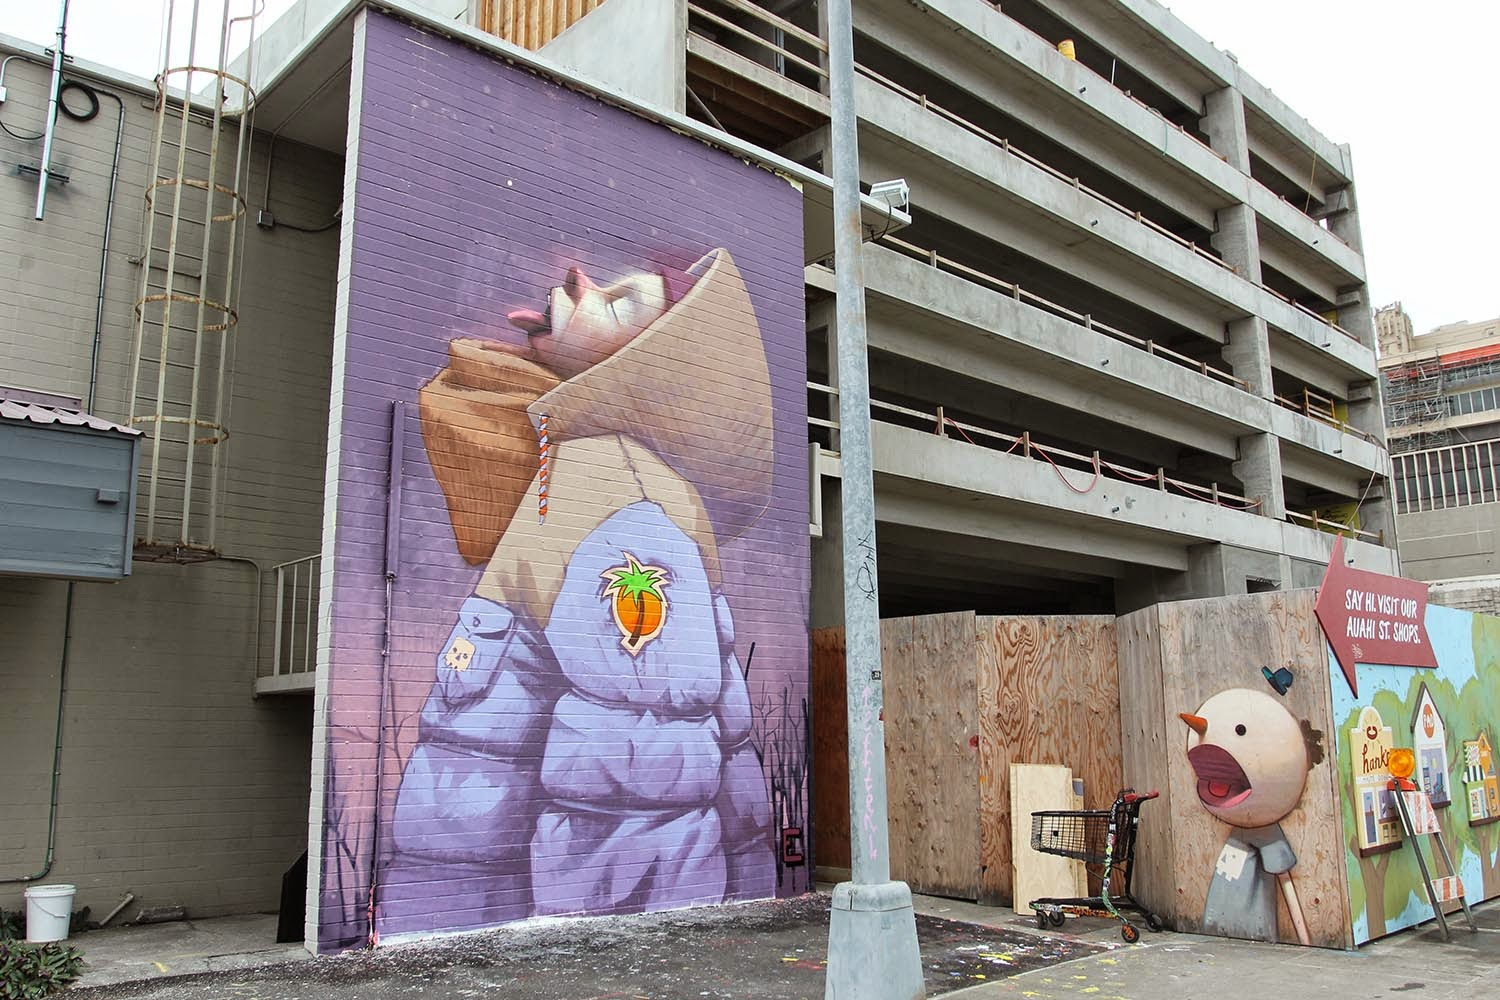 Sainer and Bezt from Etam Cru are currently in Honolulu, Hawaii where they were invited to paint for Pow! Wow! 2015.